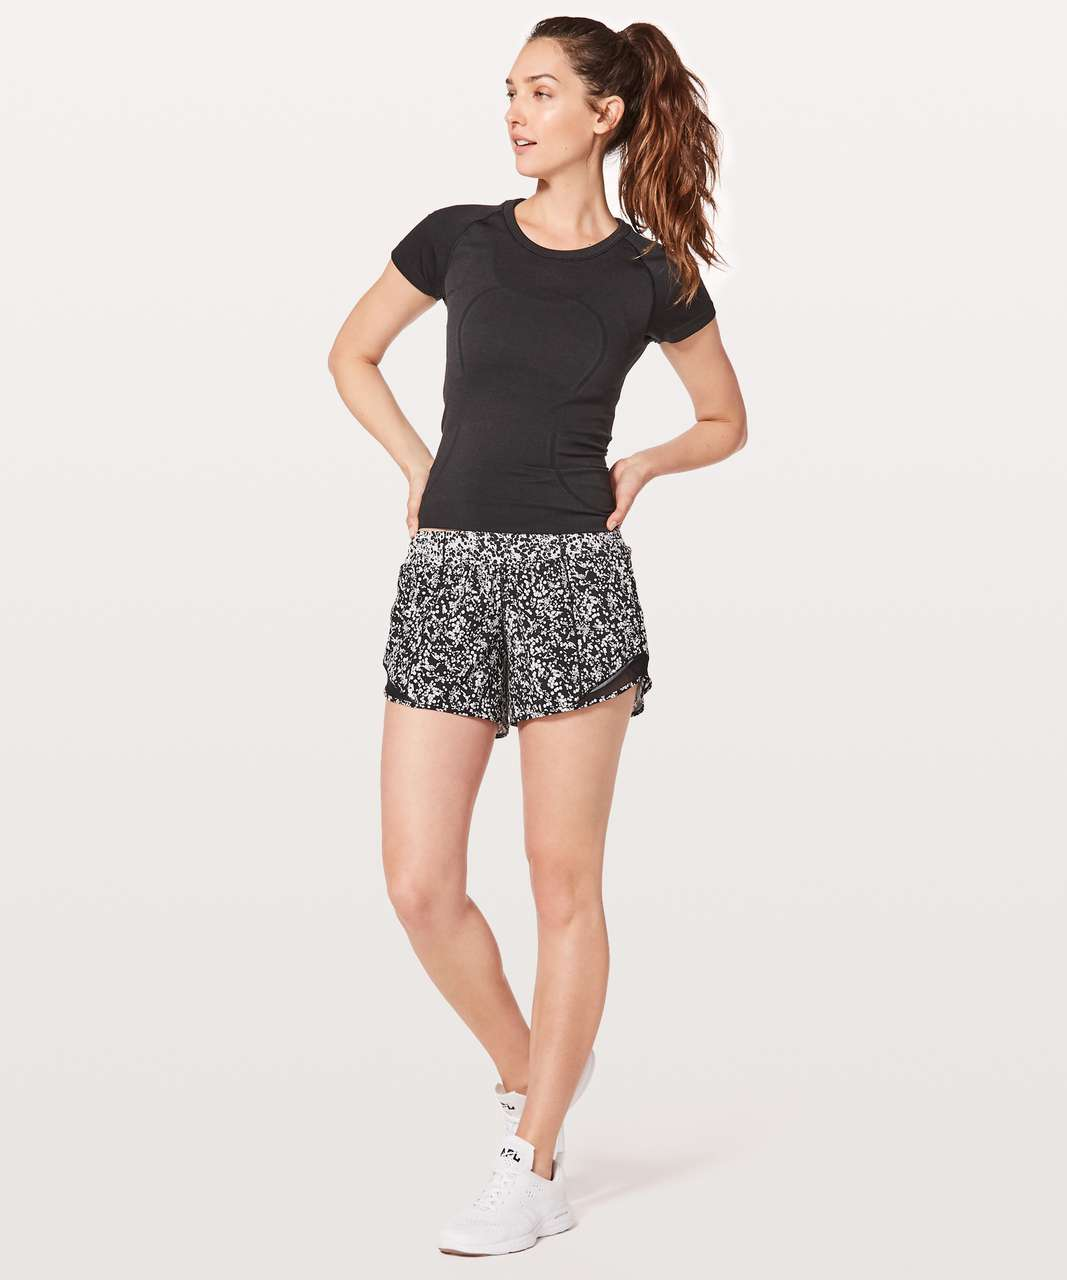 "Lululemon Hotty Hot Short II *Long 4"" - Chirasu Black / Chirakasu Alpine White / Black"